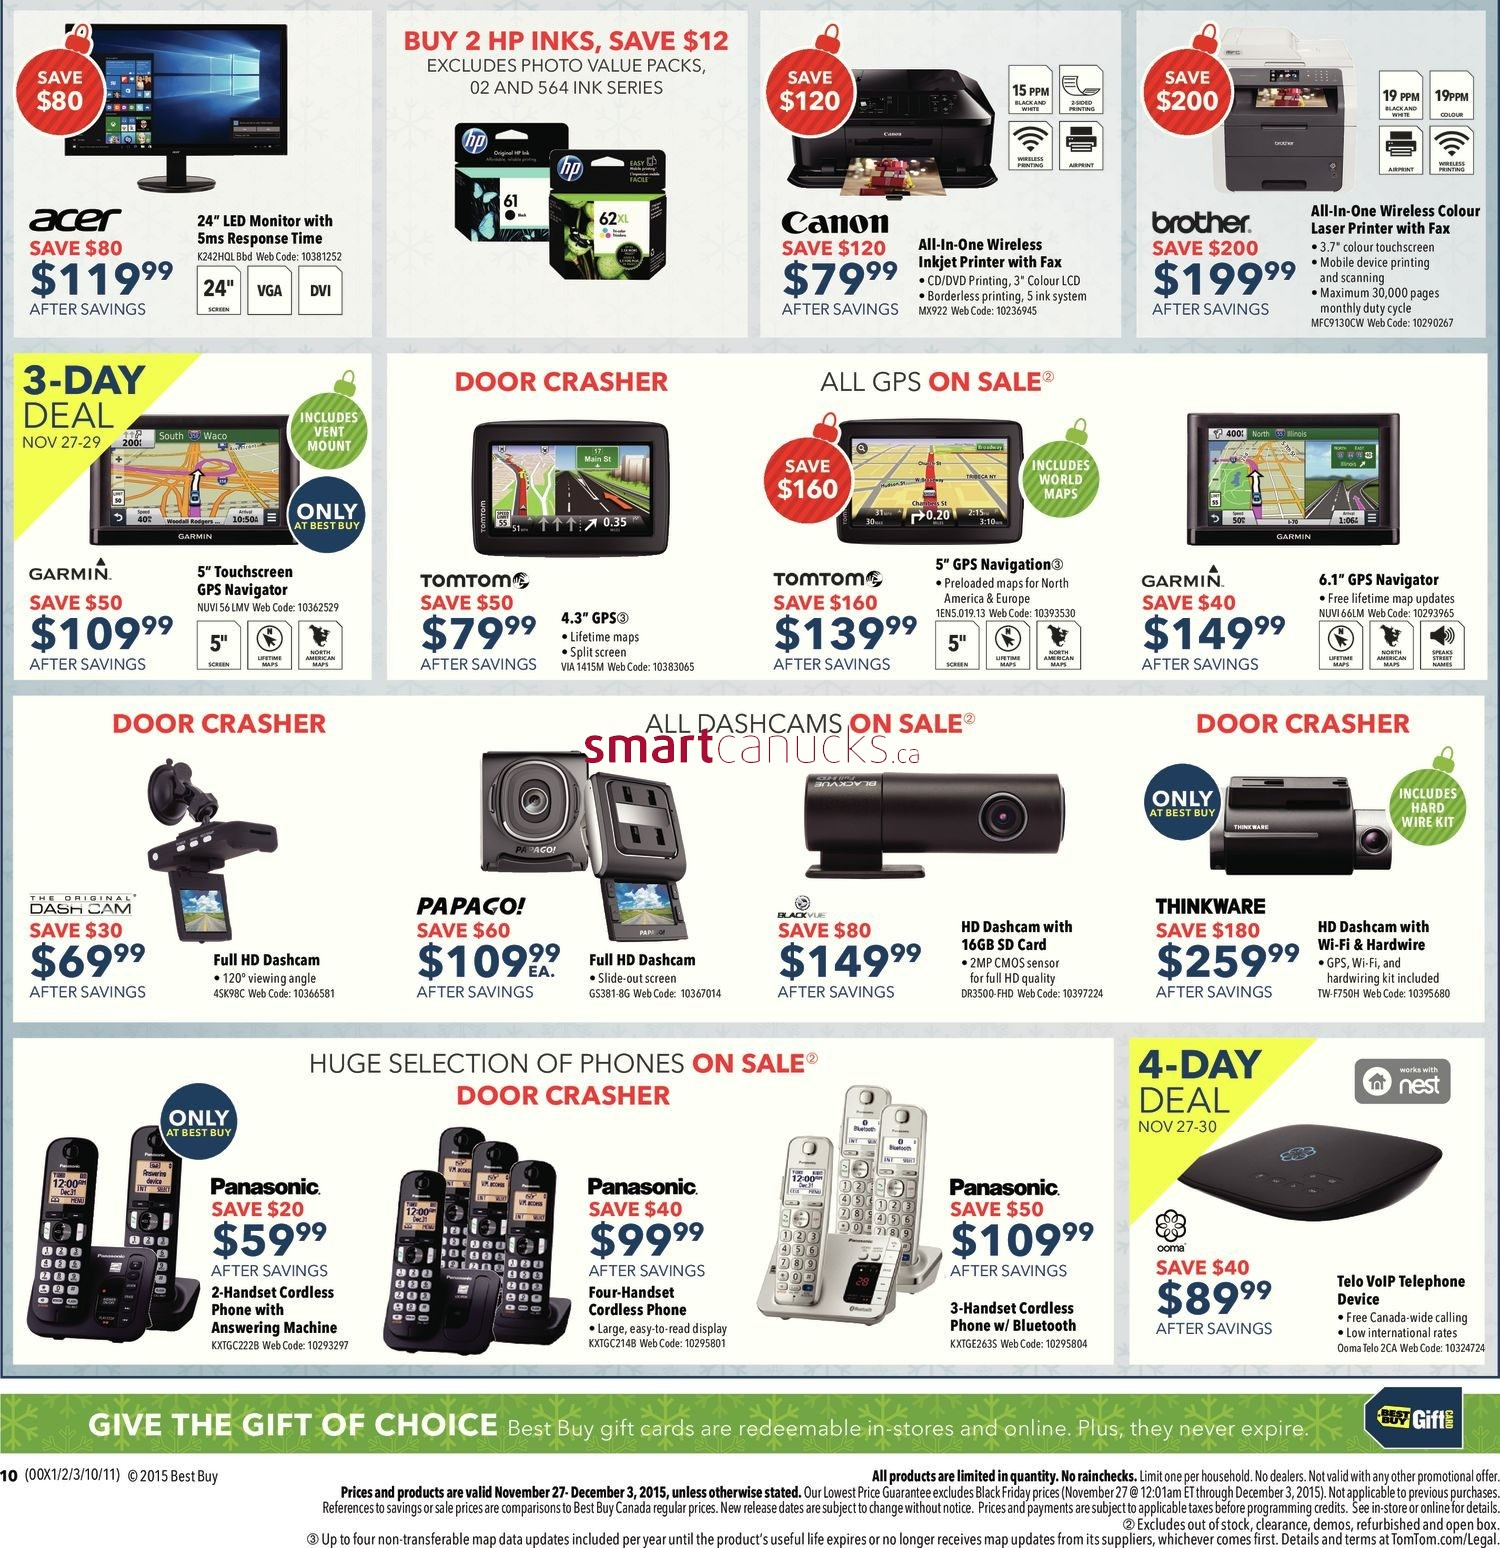 10 of the Biggest Black Friday Sales in Canada. Here are our picks for the top 10 Canadian Black Friday Deals. 1. Best Buy Canada. When it comes to Black Friday sales, electronics are king. From big-screen TVs to gaming systems to Smartphones and tablets, on Black Friday, Best Buy will truly offer you the best buys.